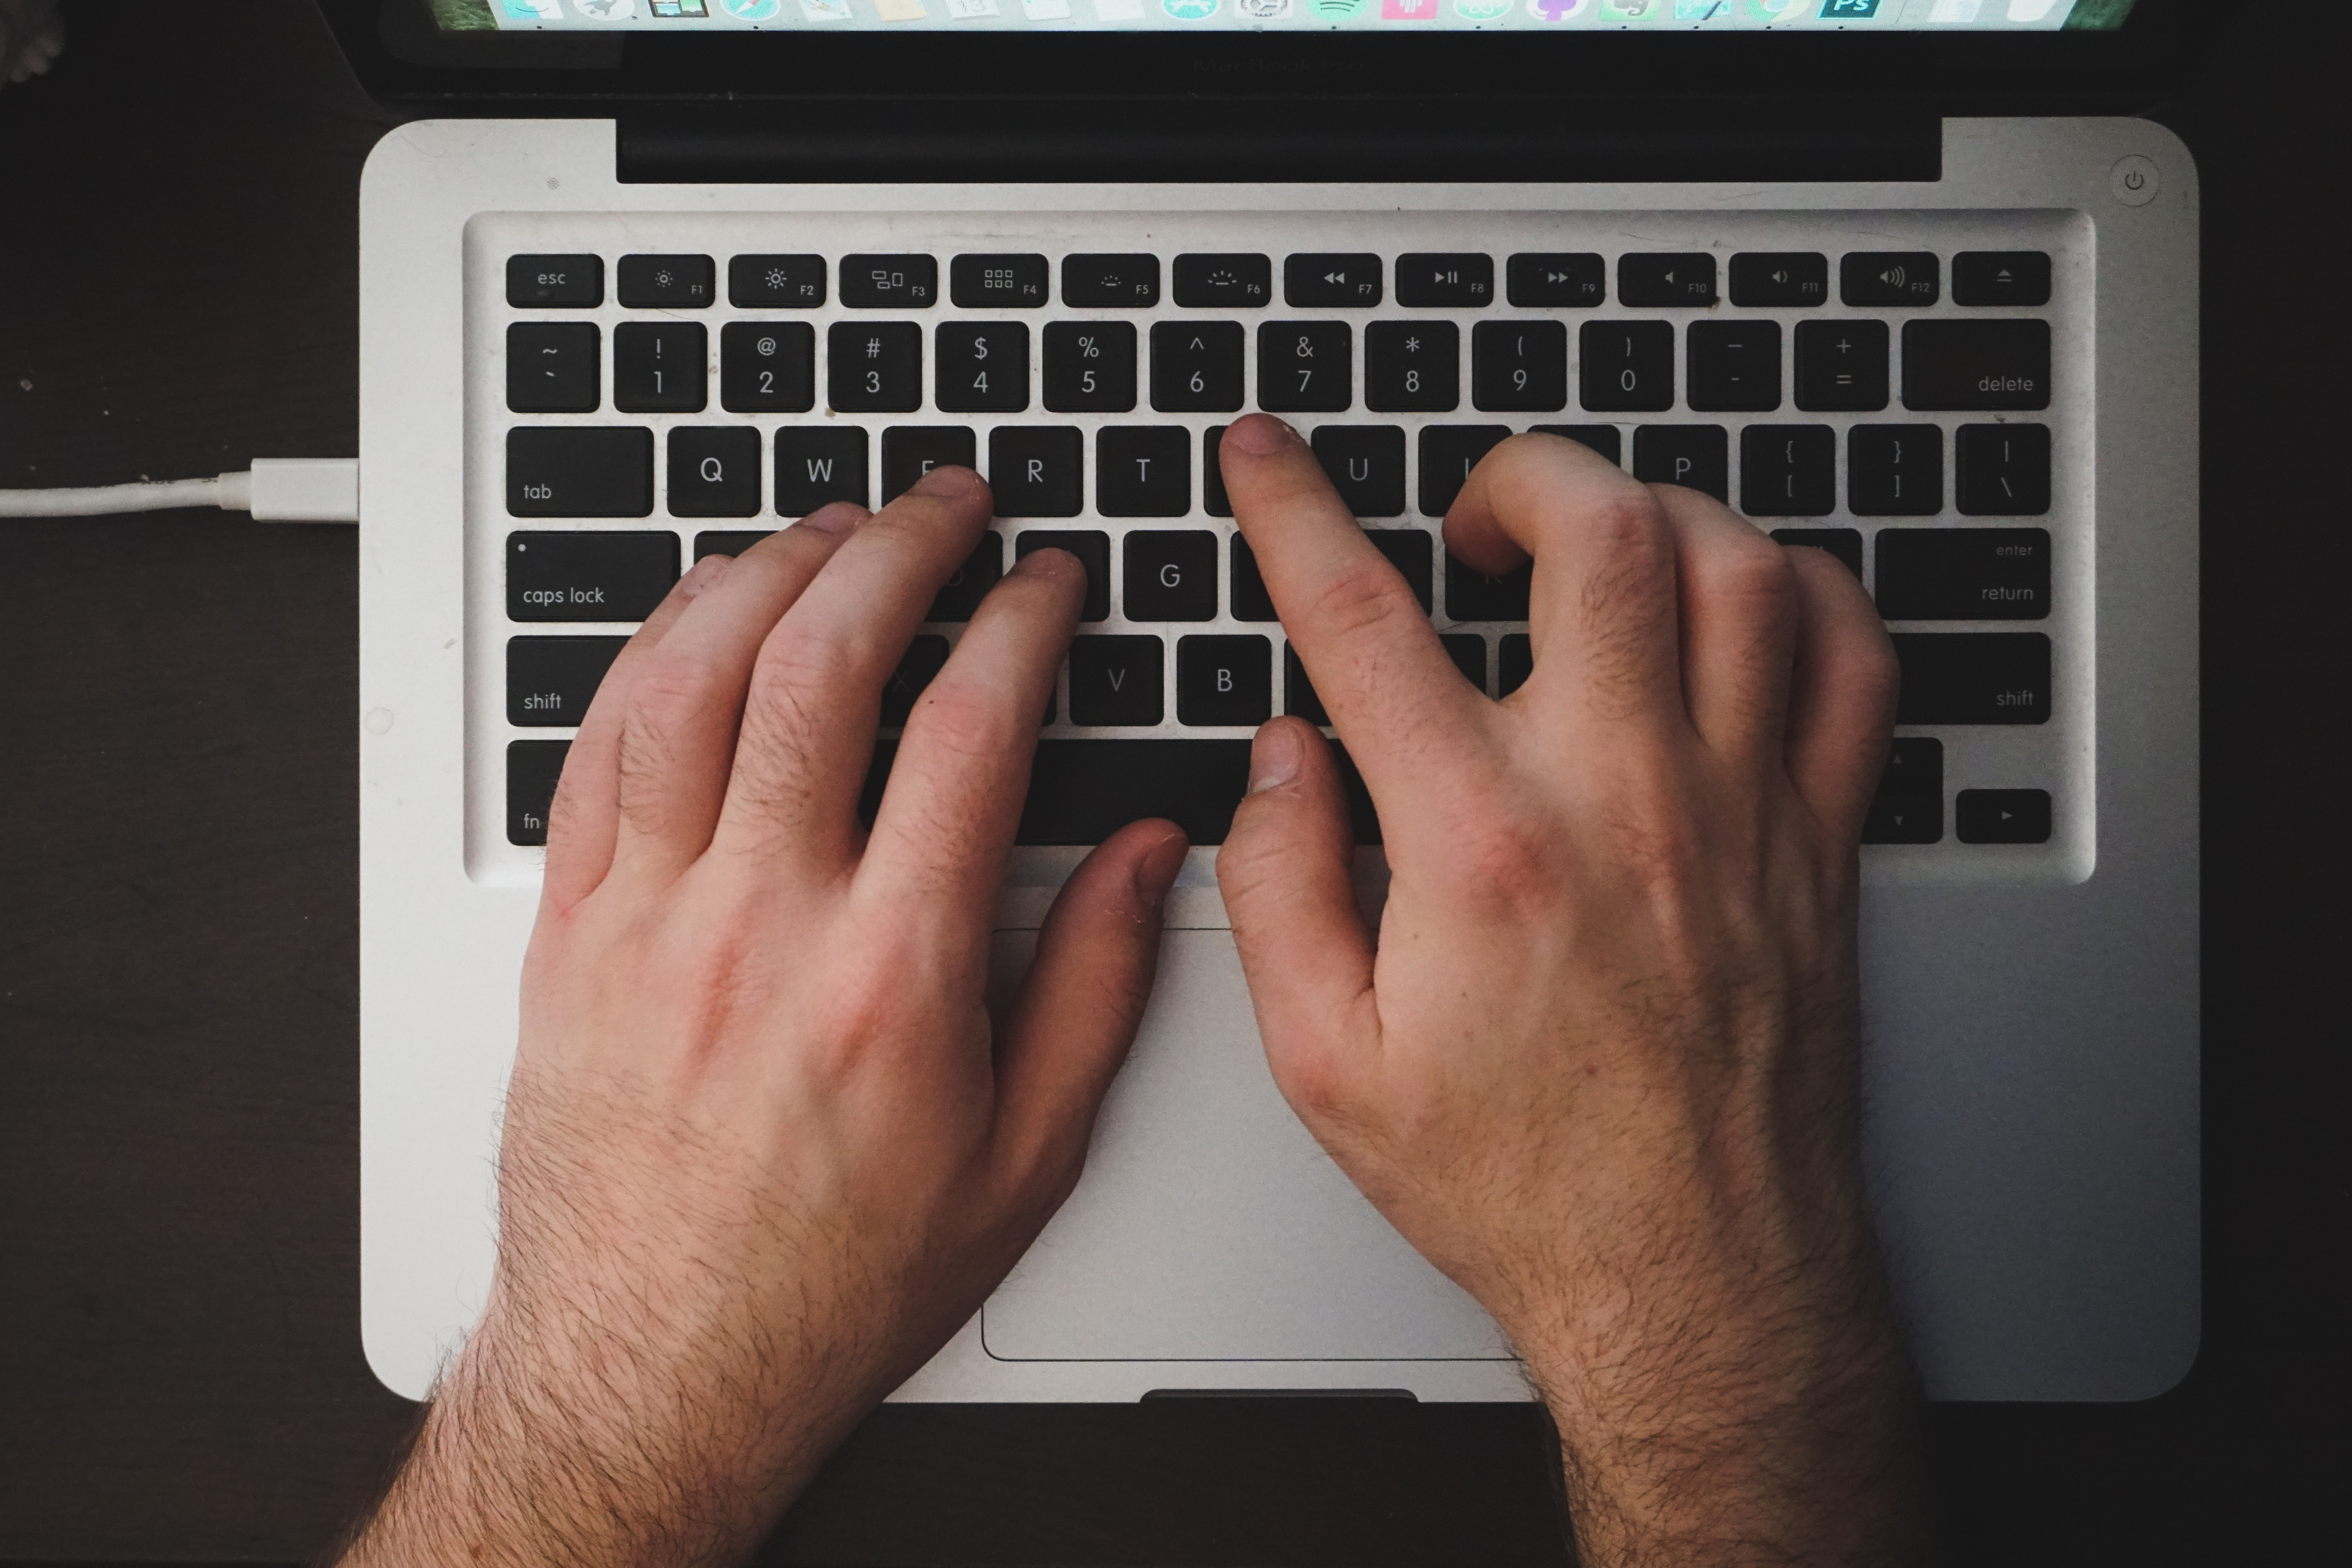 Close up of a man's hands typing on a laptop